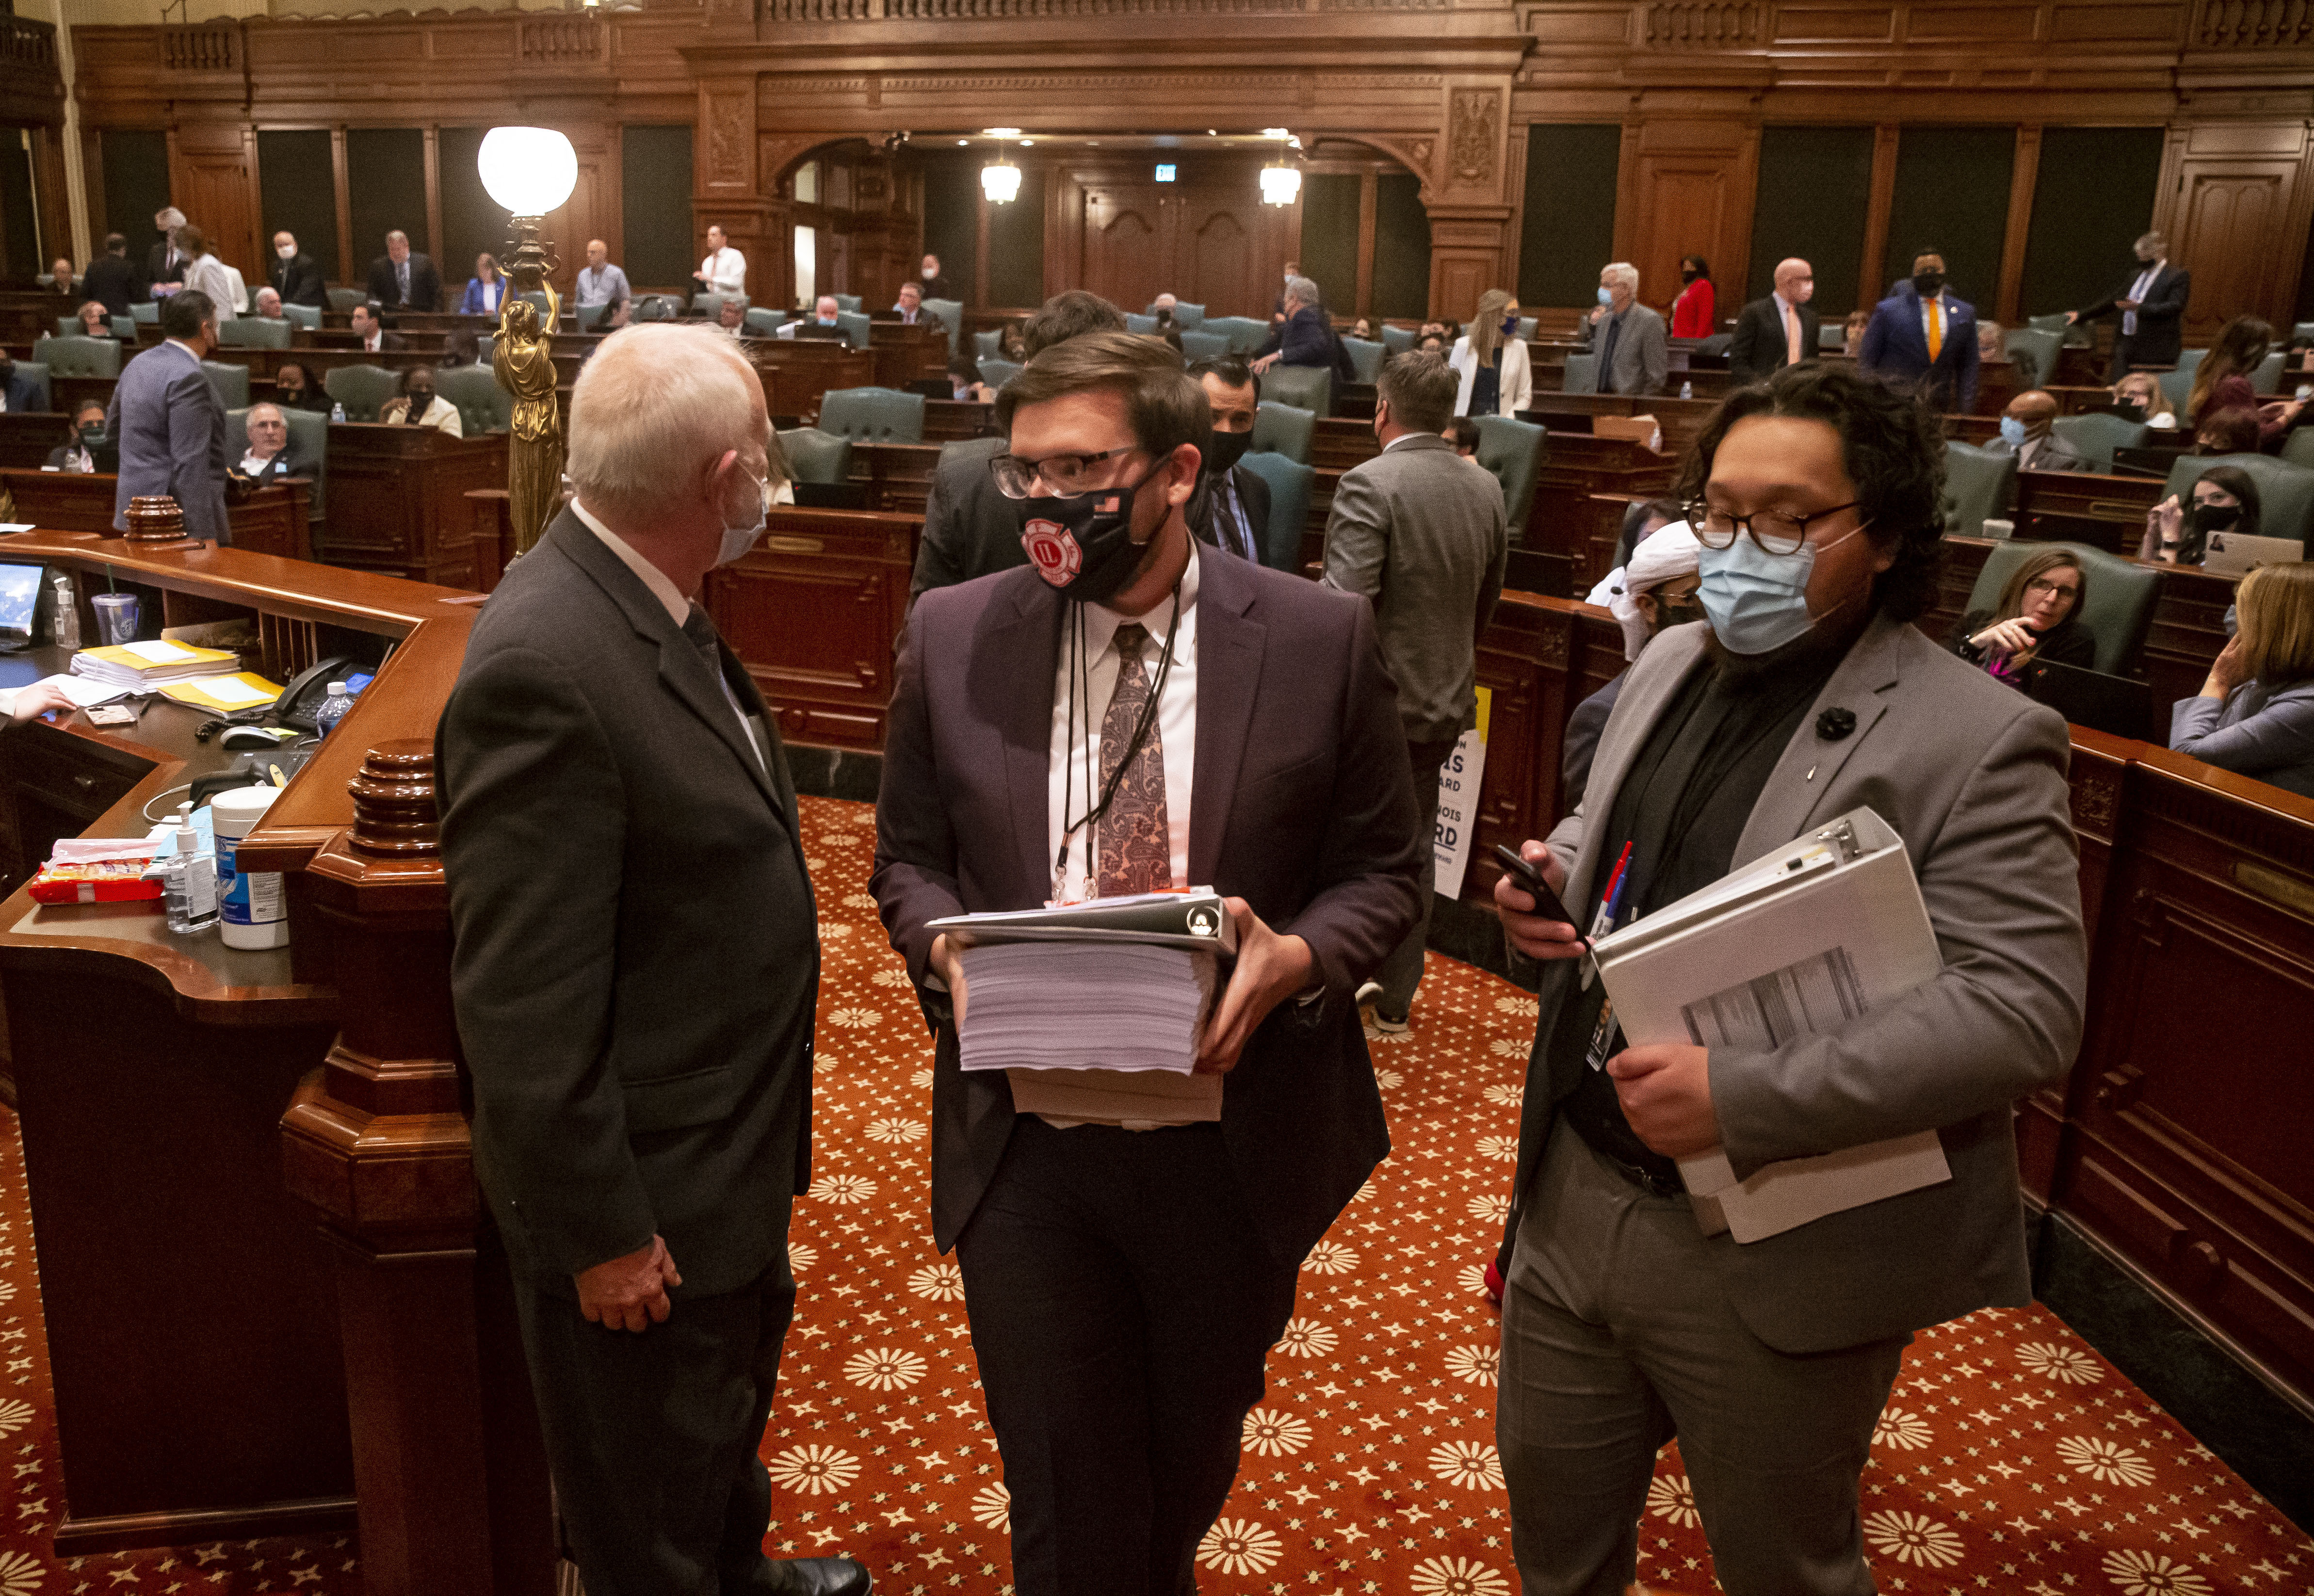 Staff leave floor of the Illinois House of Representatives after the budget is passed around midnight on the last day of session at the Illinois State Capitol in Springfield early Tuesday.